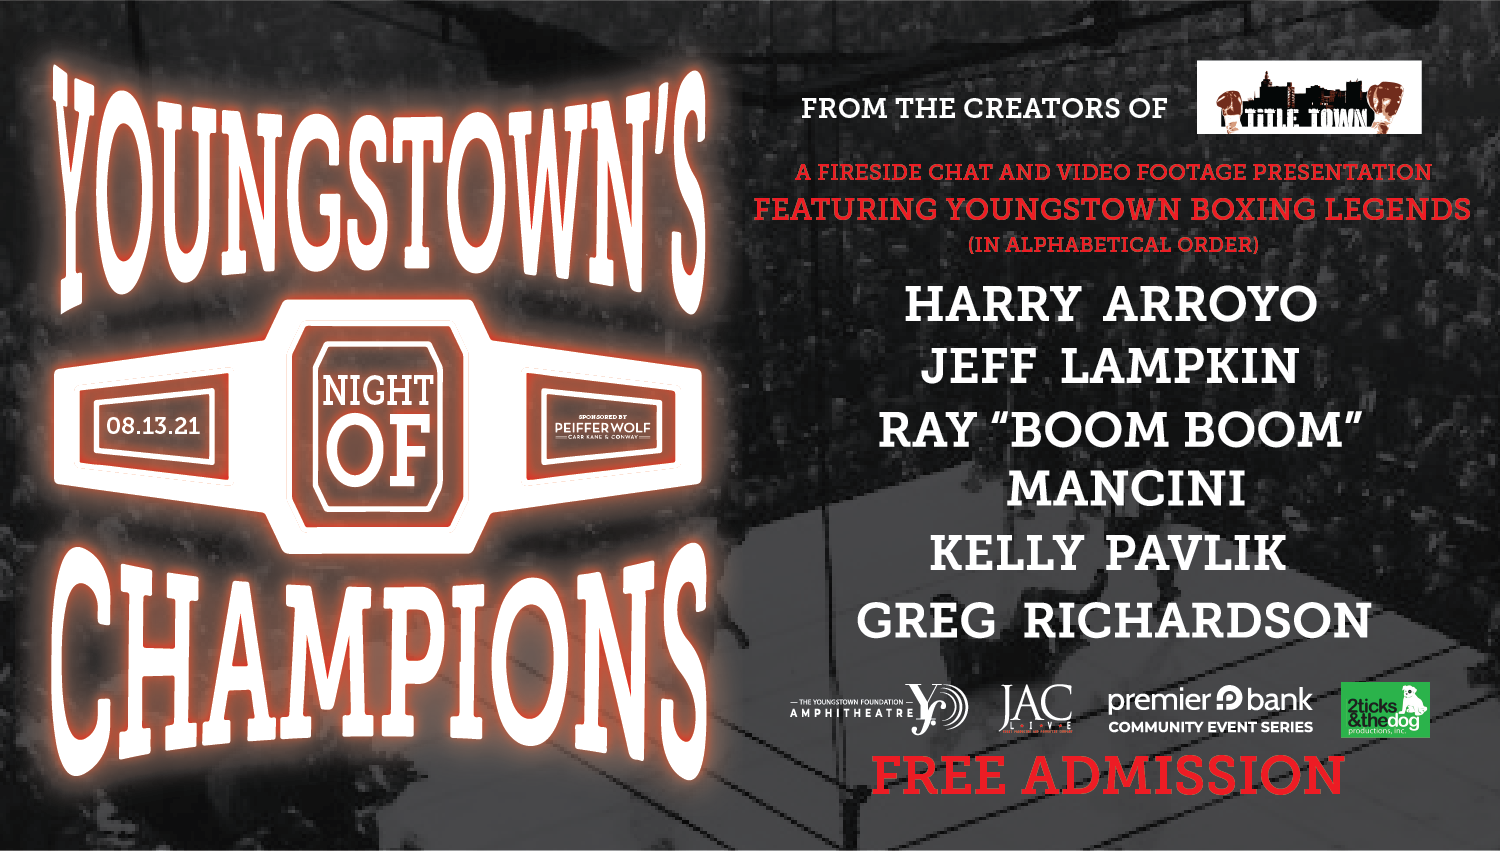 Youngstown's Night of Champions